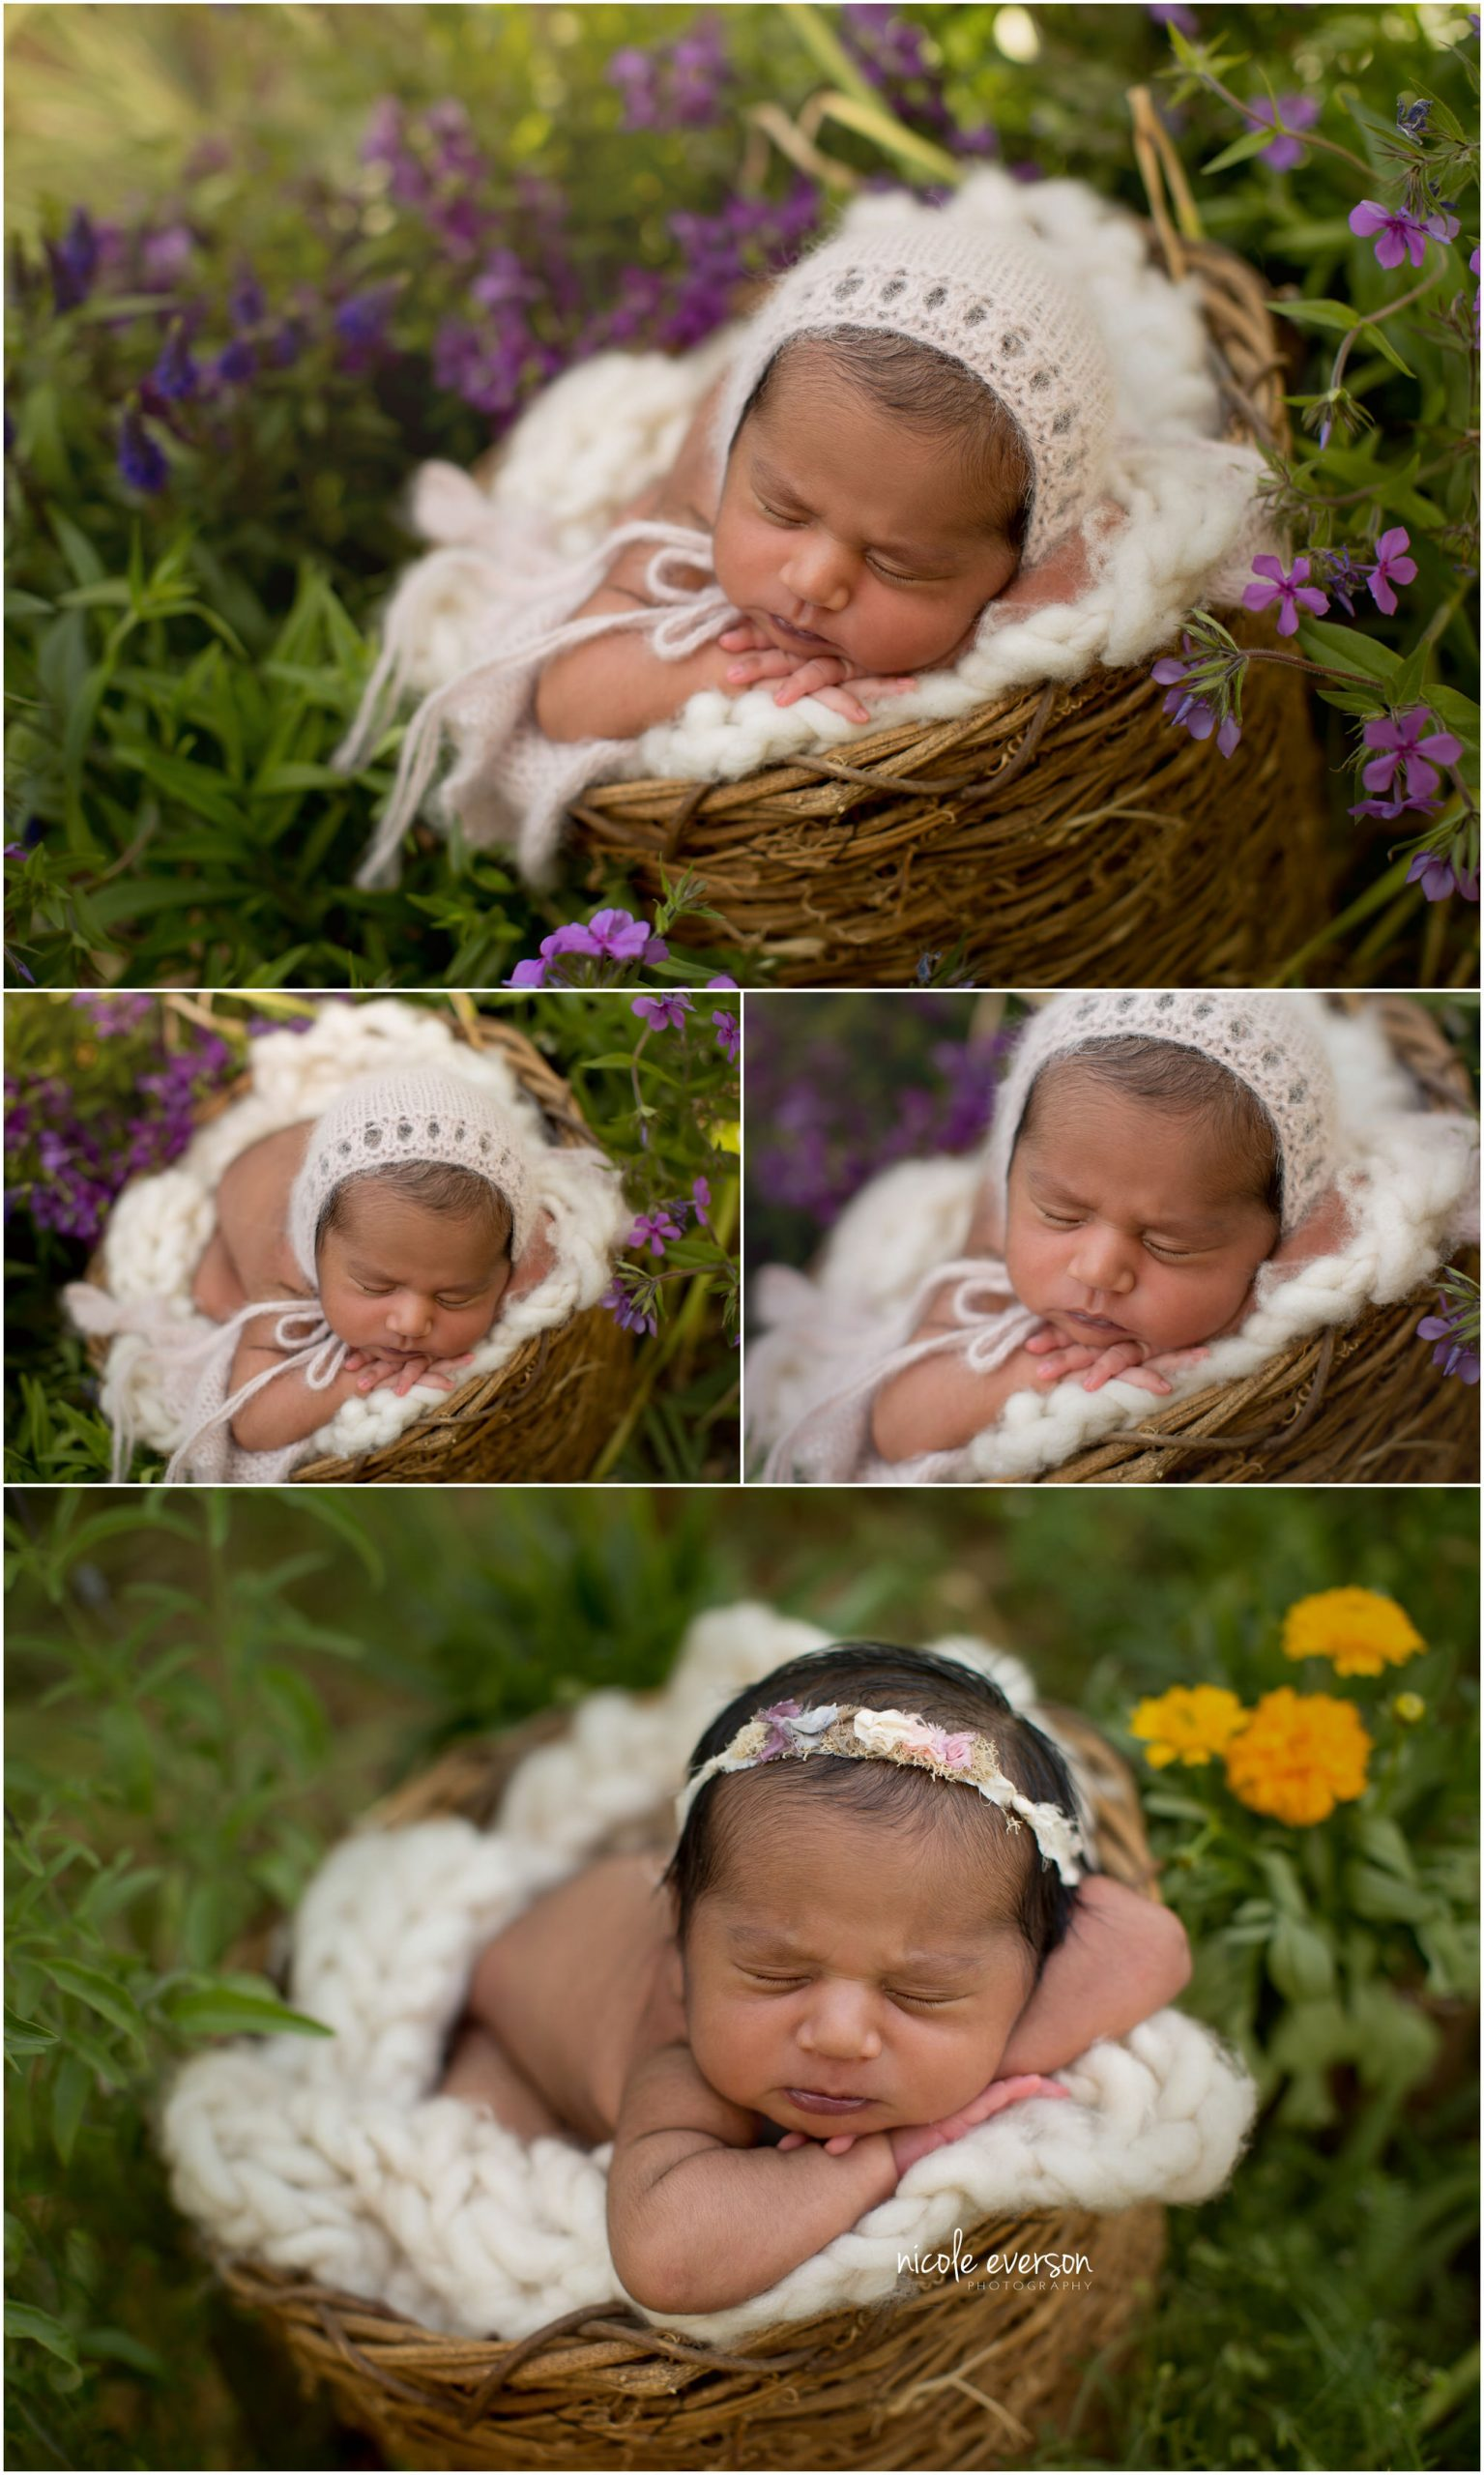 Newborn portraits of a baby girl swaddled in a fuzzy blanket. Garden newborn photos. Nicole Everson Photography.